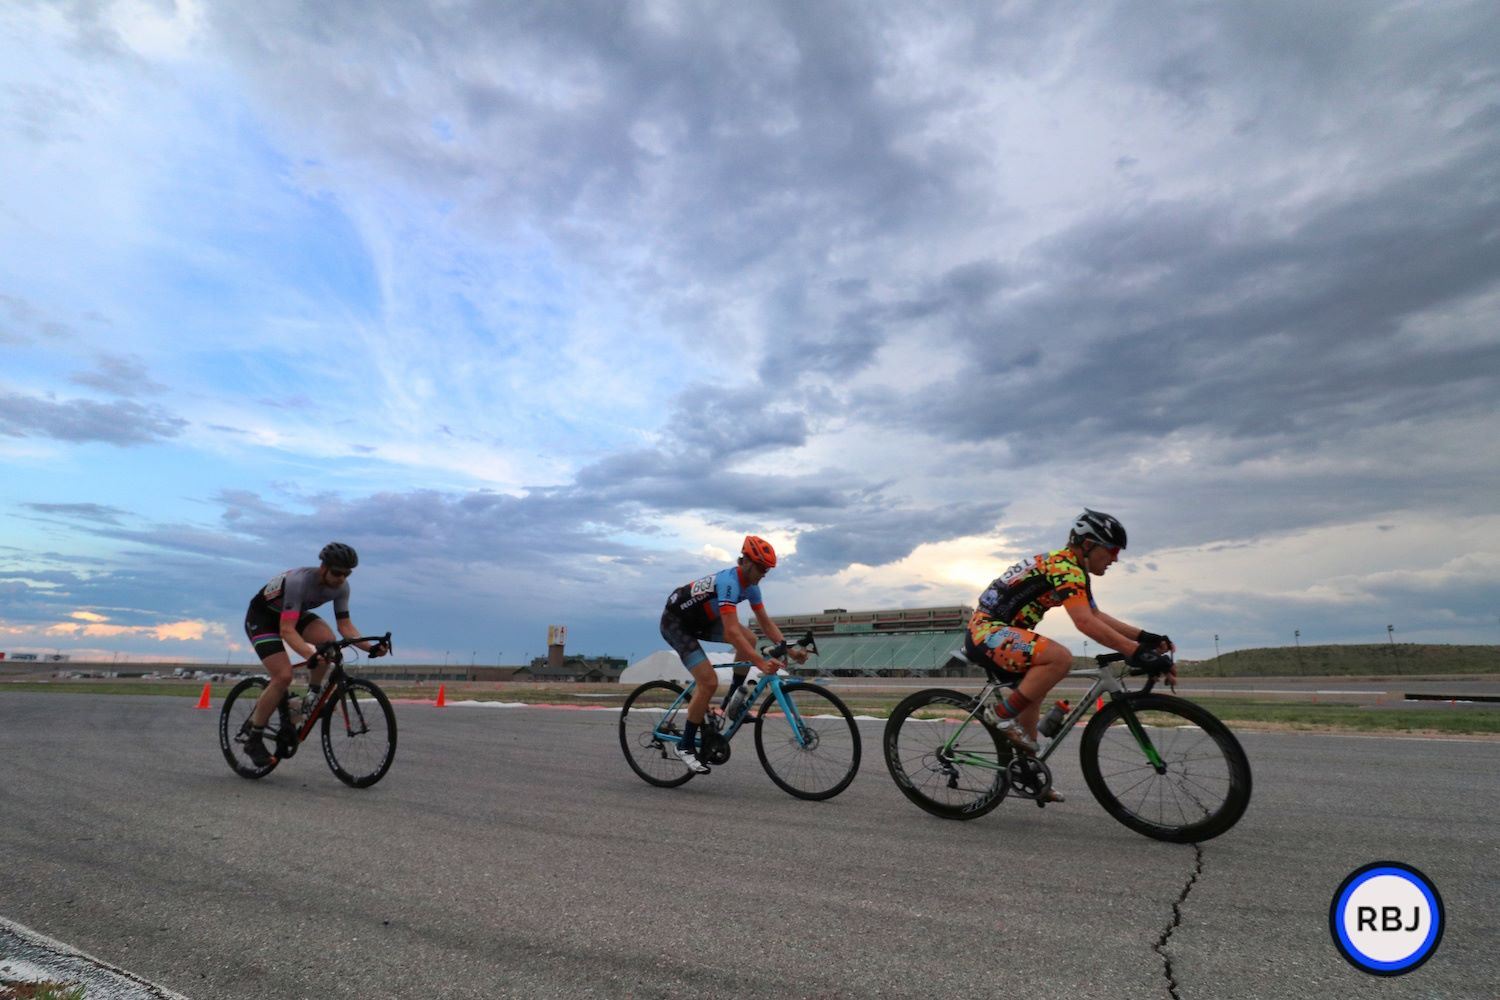 More action at the Colorado Springs Community Crits head at the Pikes Peak International Speedway. Photo courtesy of RBails Jeffrey Photography.